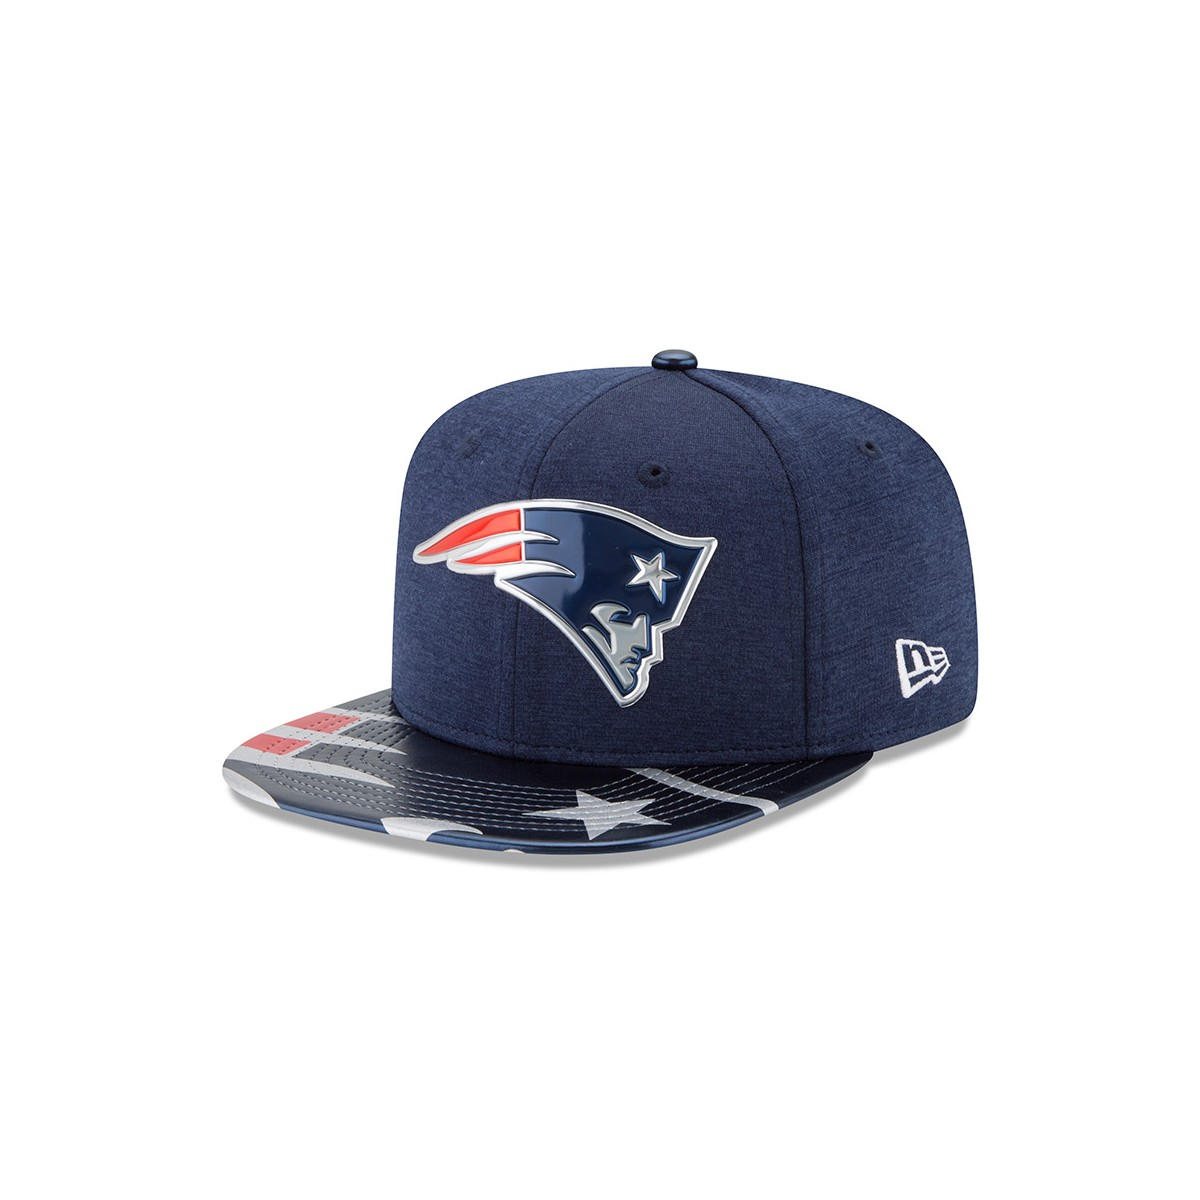 cappello new era nfl 9fifty on stage draft new england patriots 9fifty football nfl new era. Black Bedroom Furniture Sets. Home Design Ideas